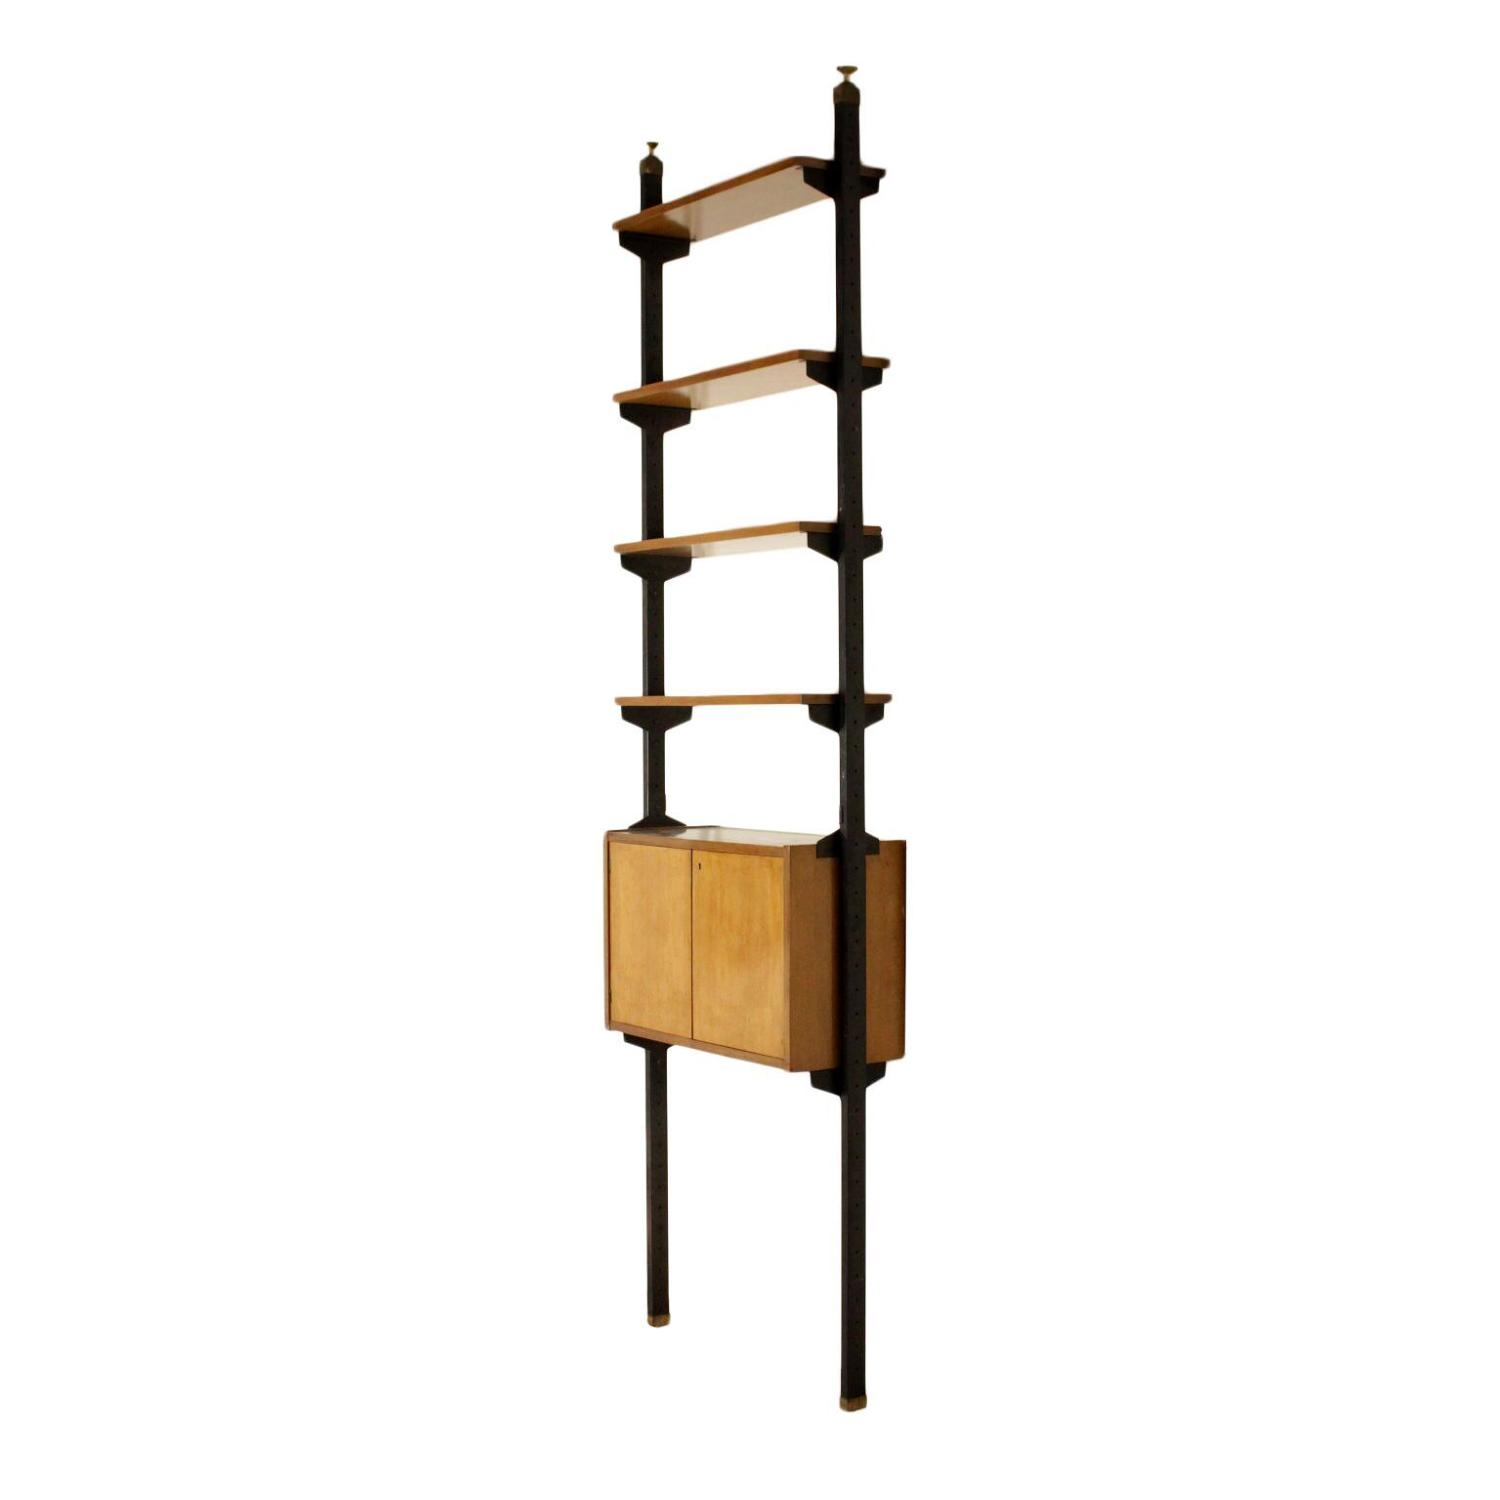 Cassina bookcase on Franco Albini design